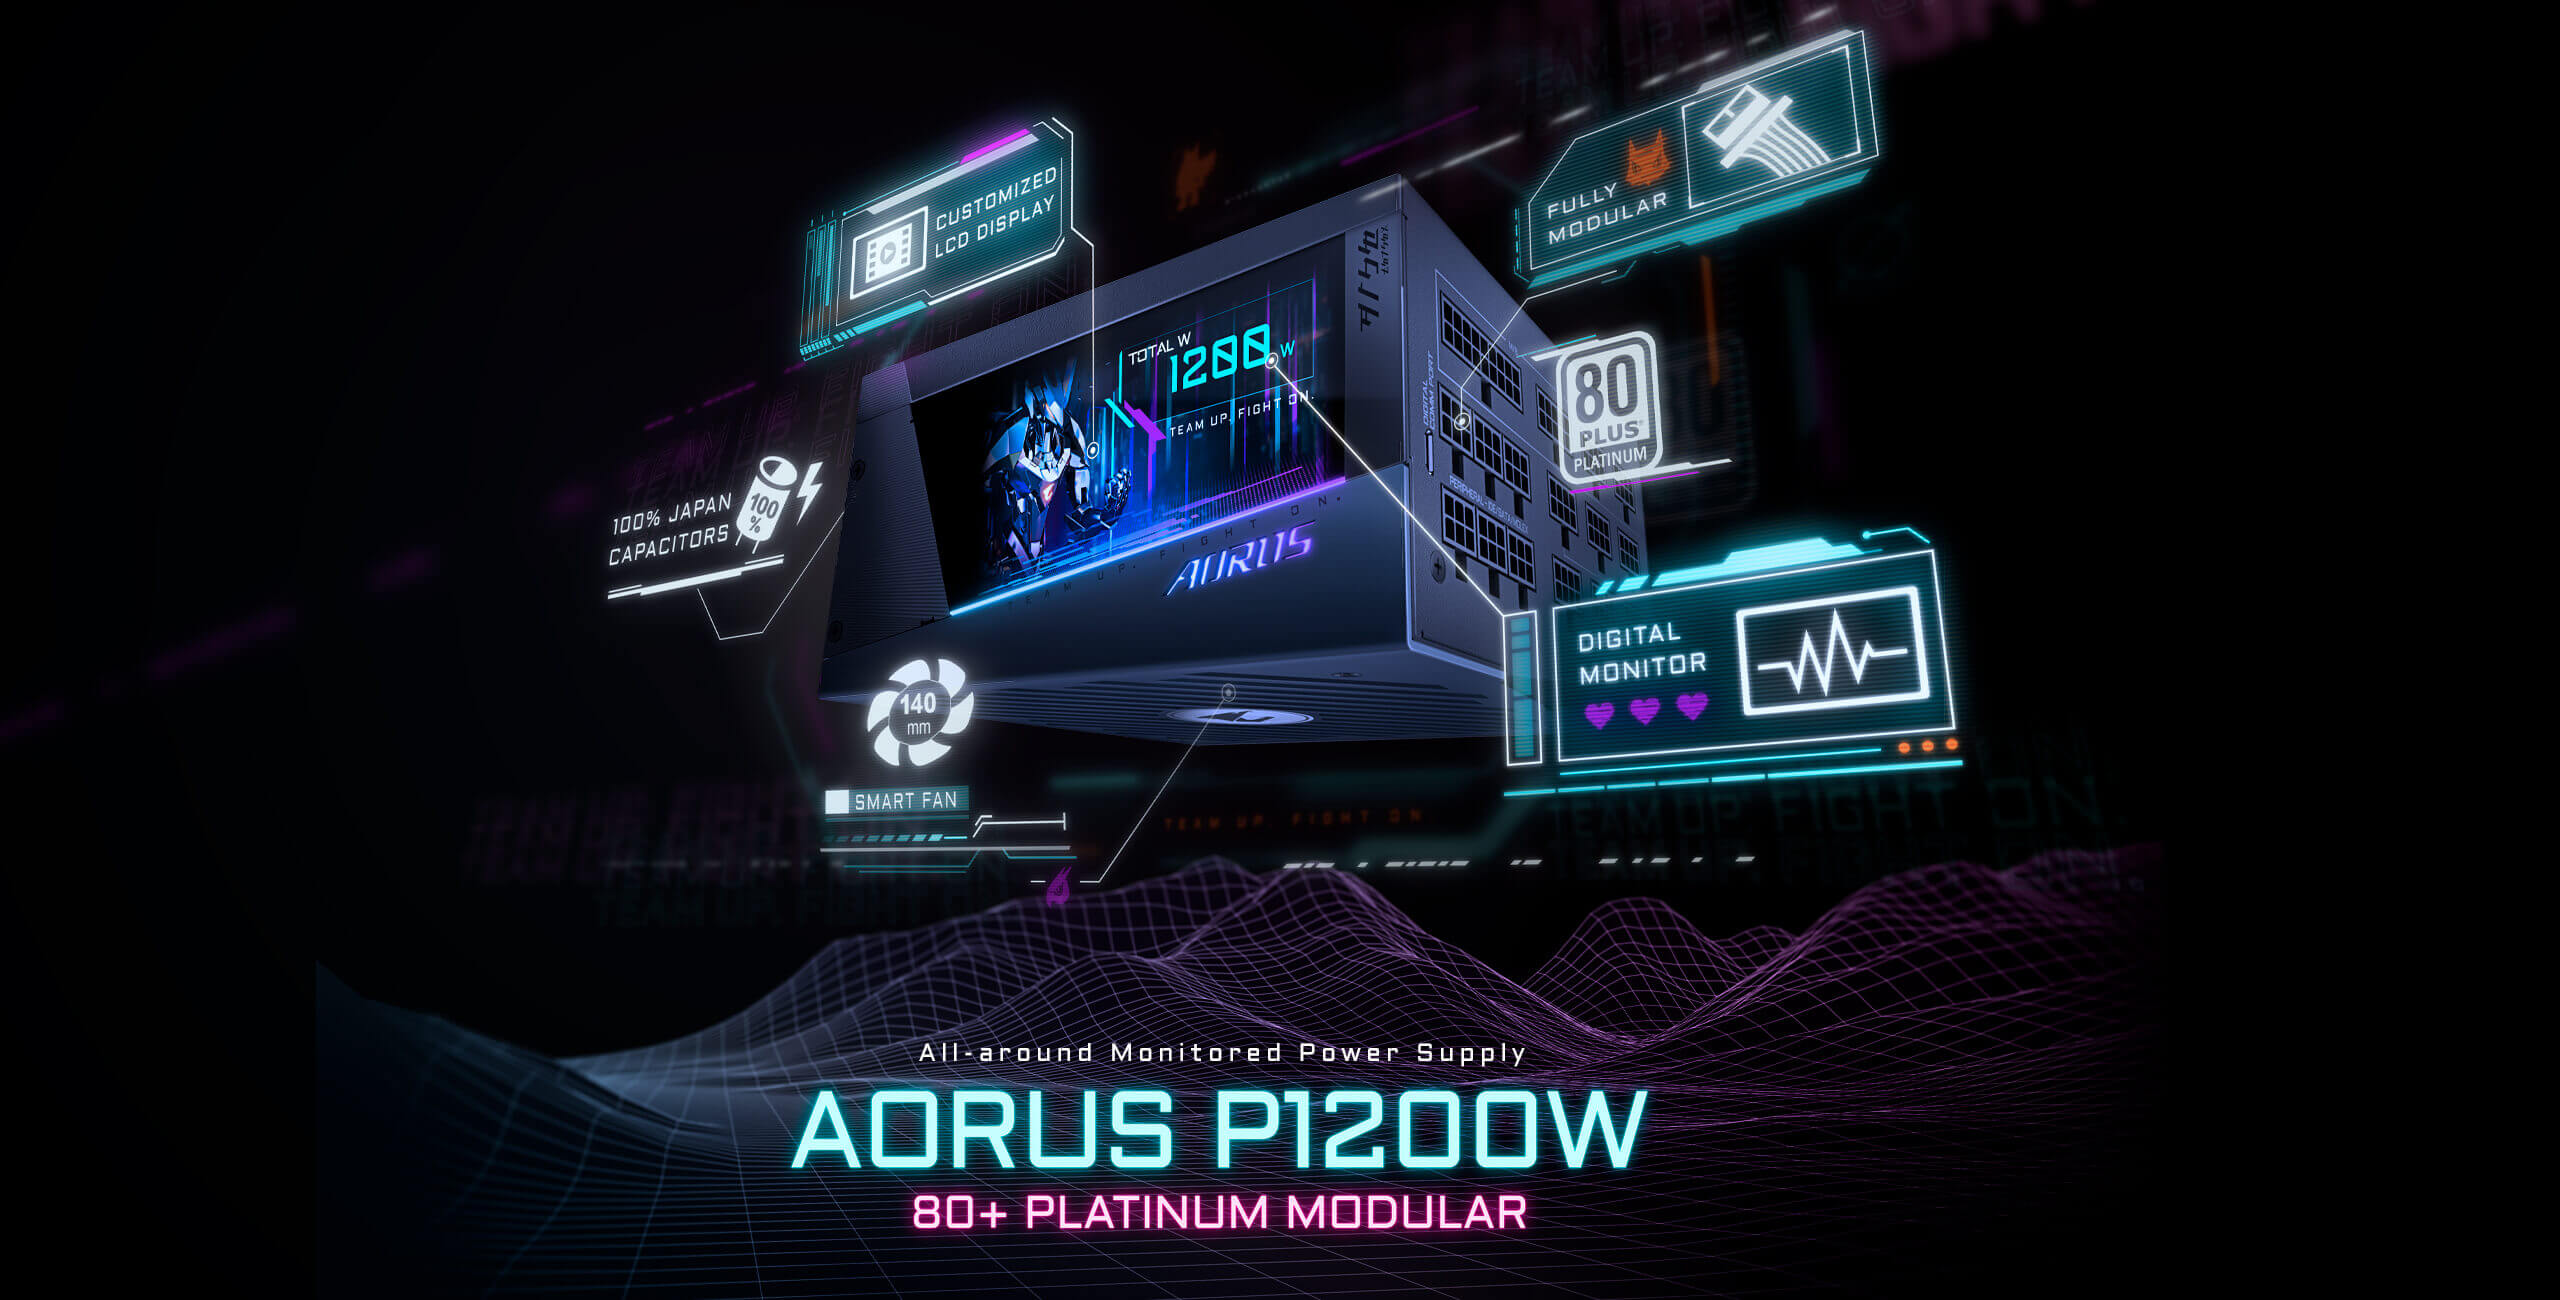 AORUS Introduces AORUS P1200W 80+ Platinum Power Supply With Customizable LCD Monitor